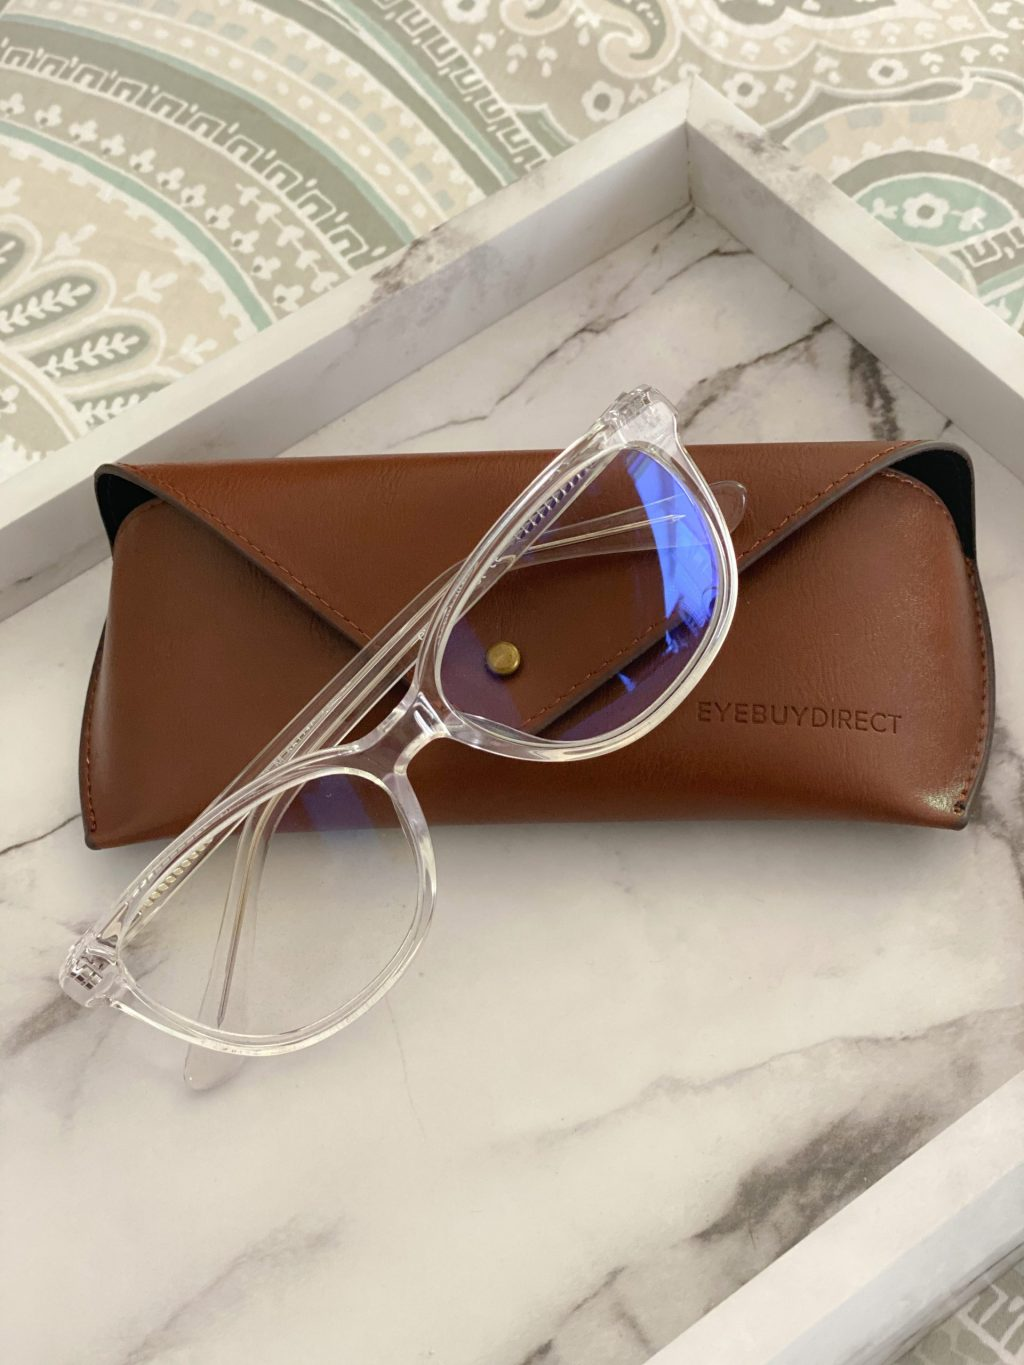 clear blue blocking glasses on brown glasses case on white marble tray